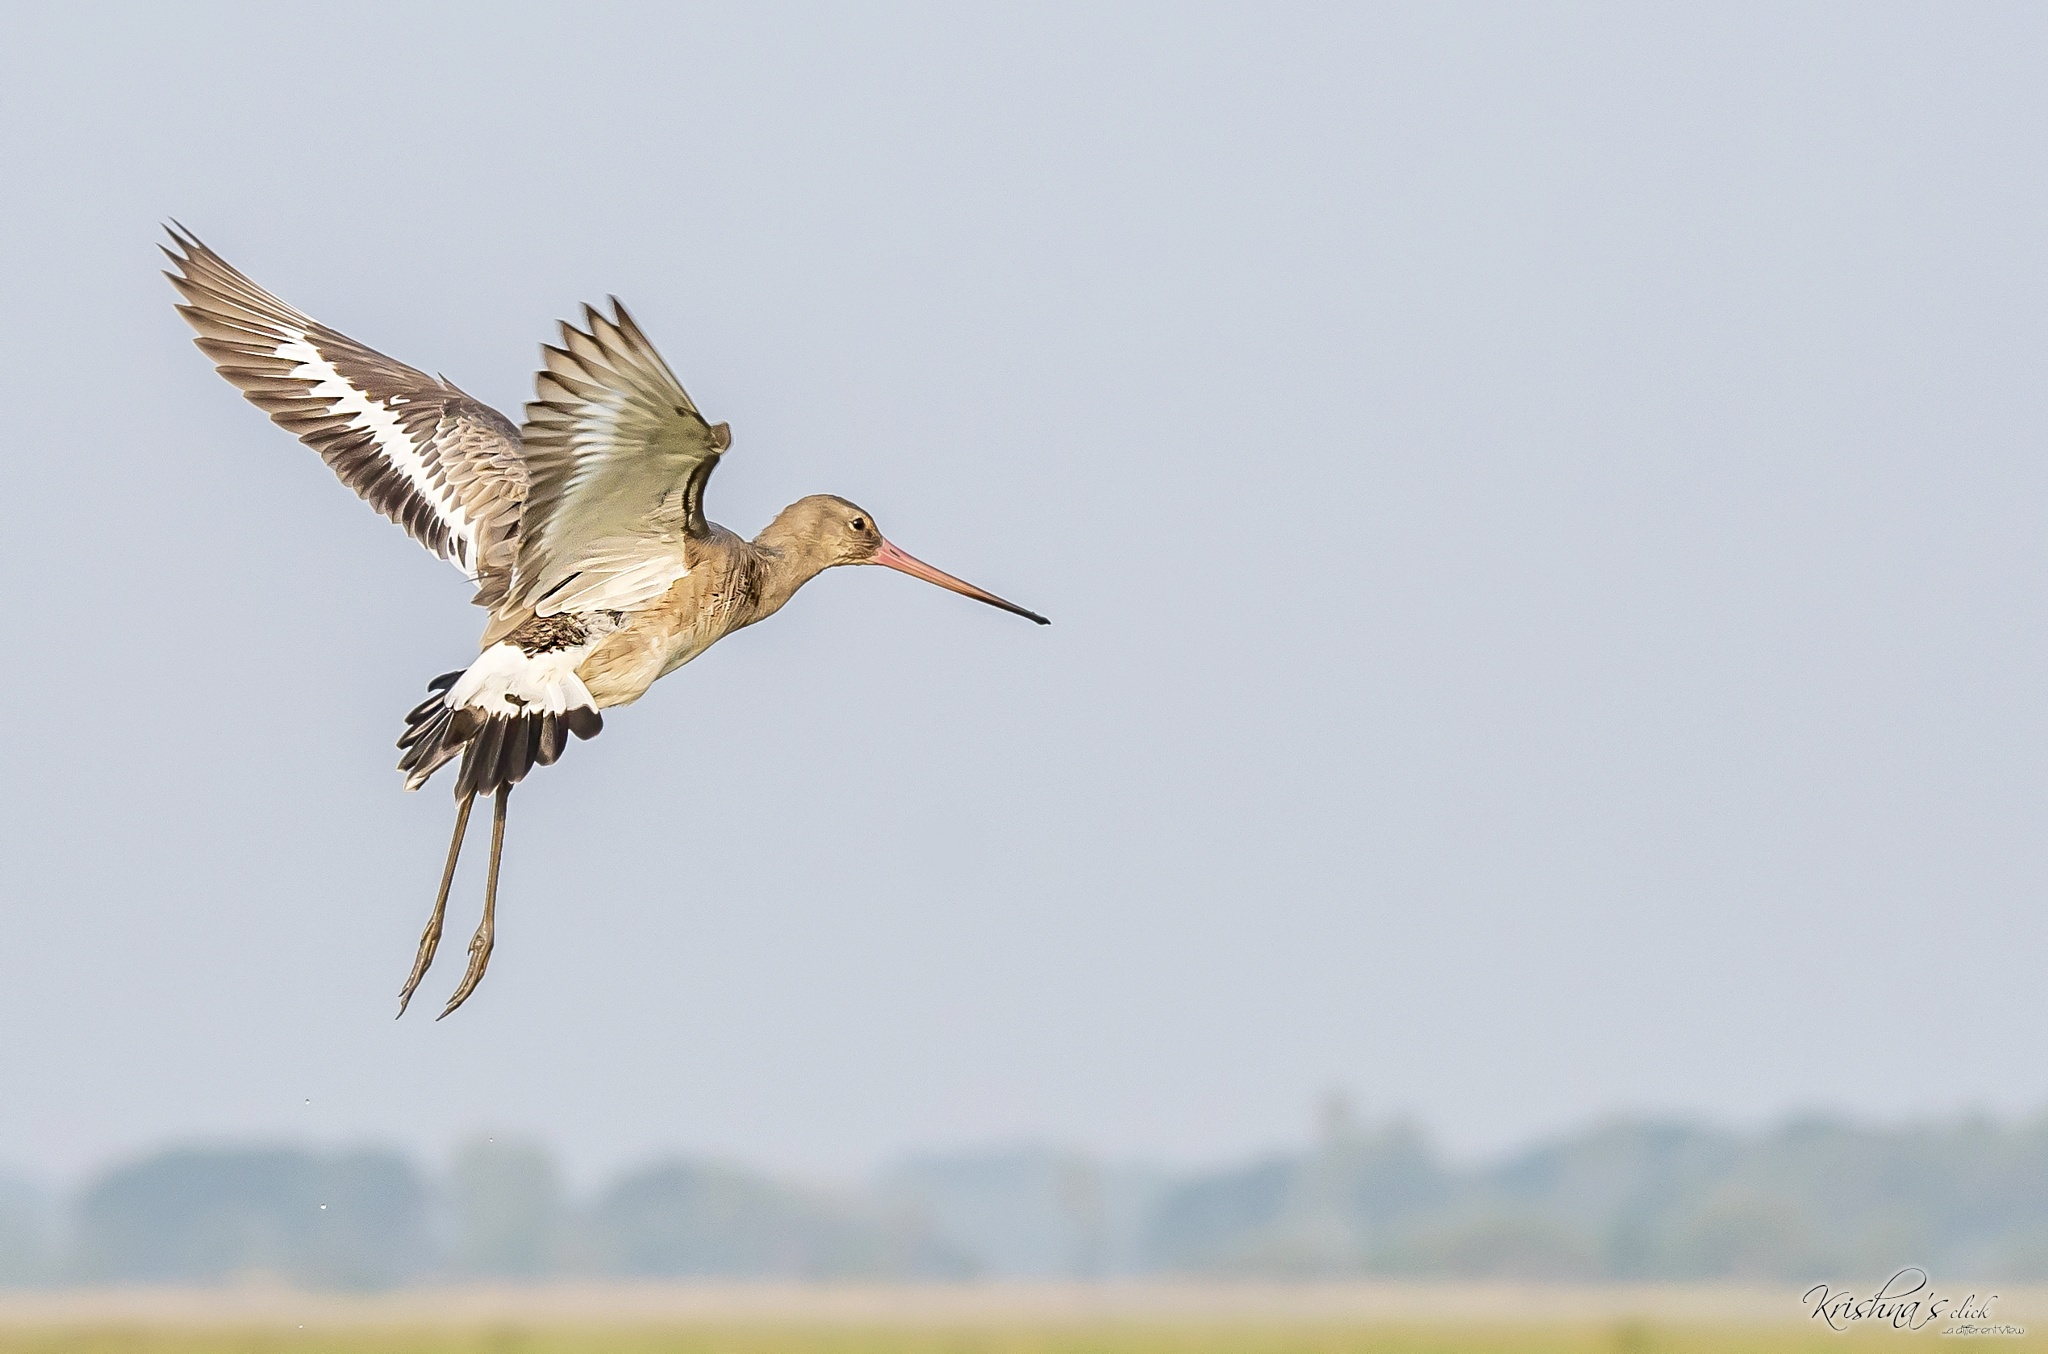 Black-tailed Godwit by Srikrishna Das